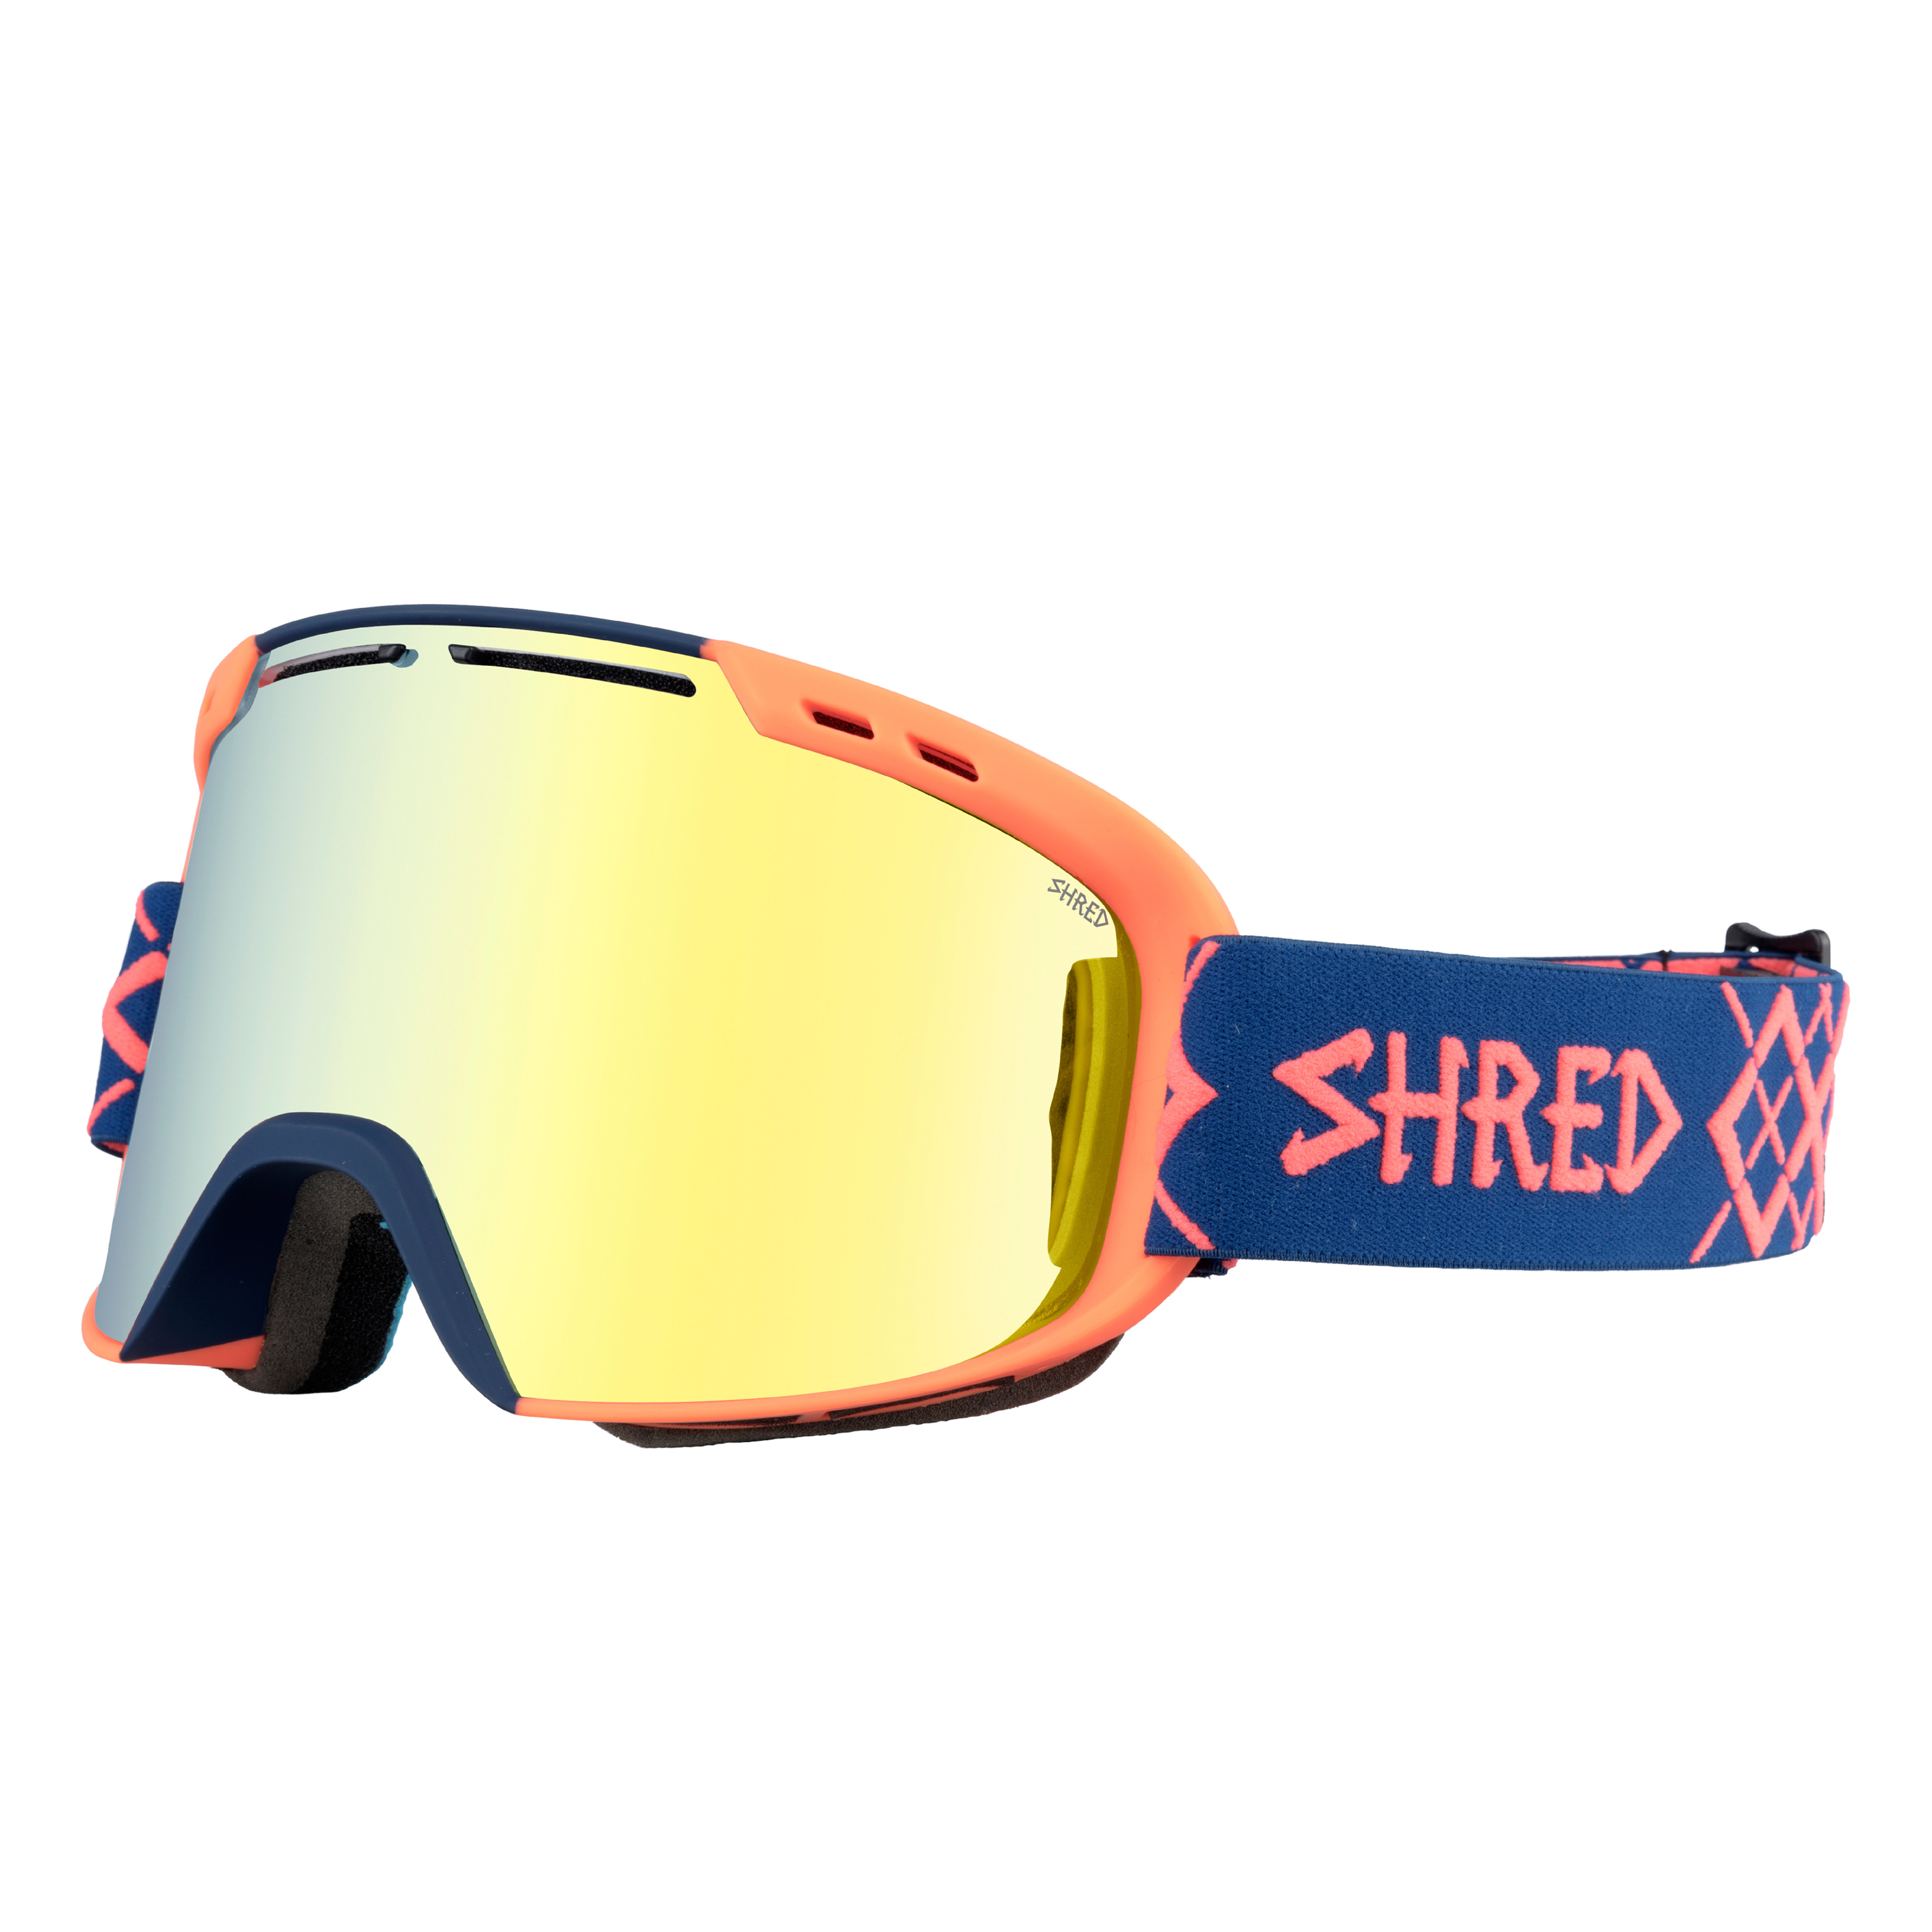 SHRED MASCHERA AMAZIFY BIGSHOW NAVY/RUST-HERO CBL GRN AMA - 2019